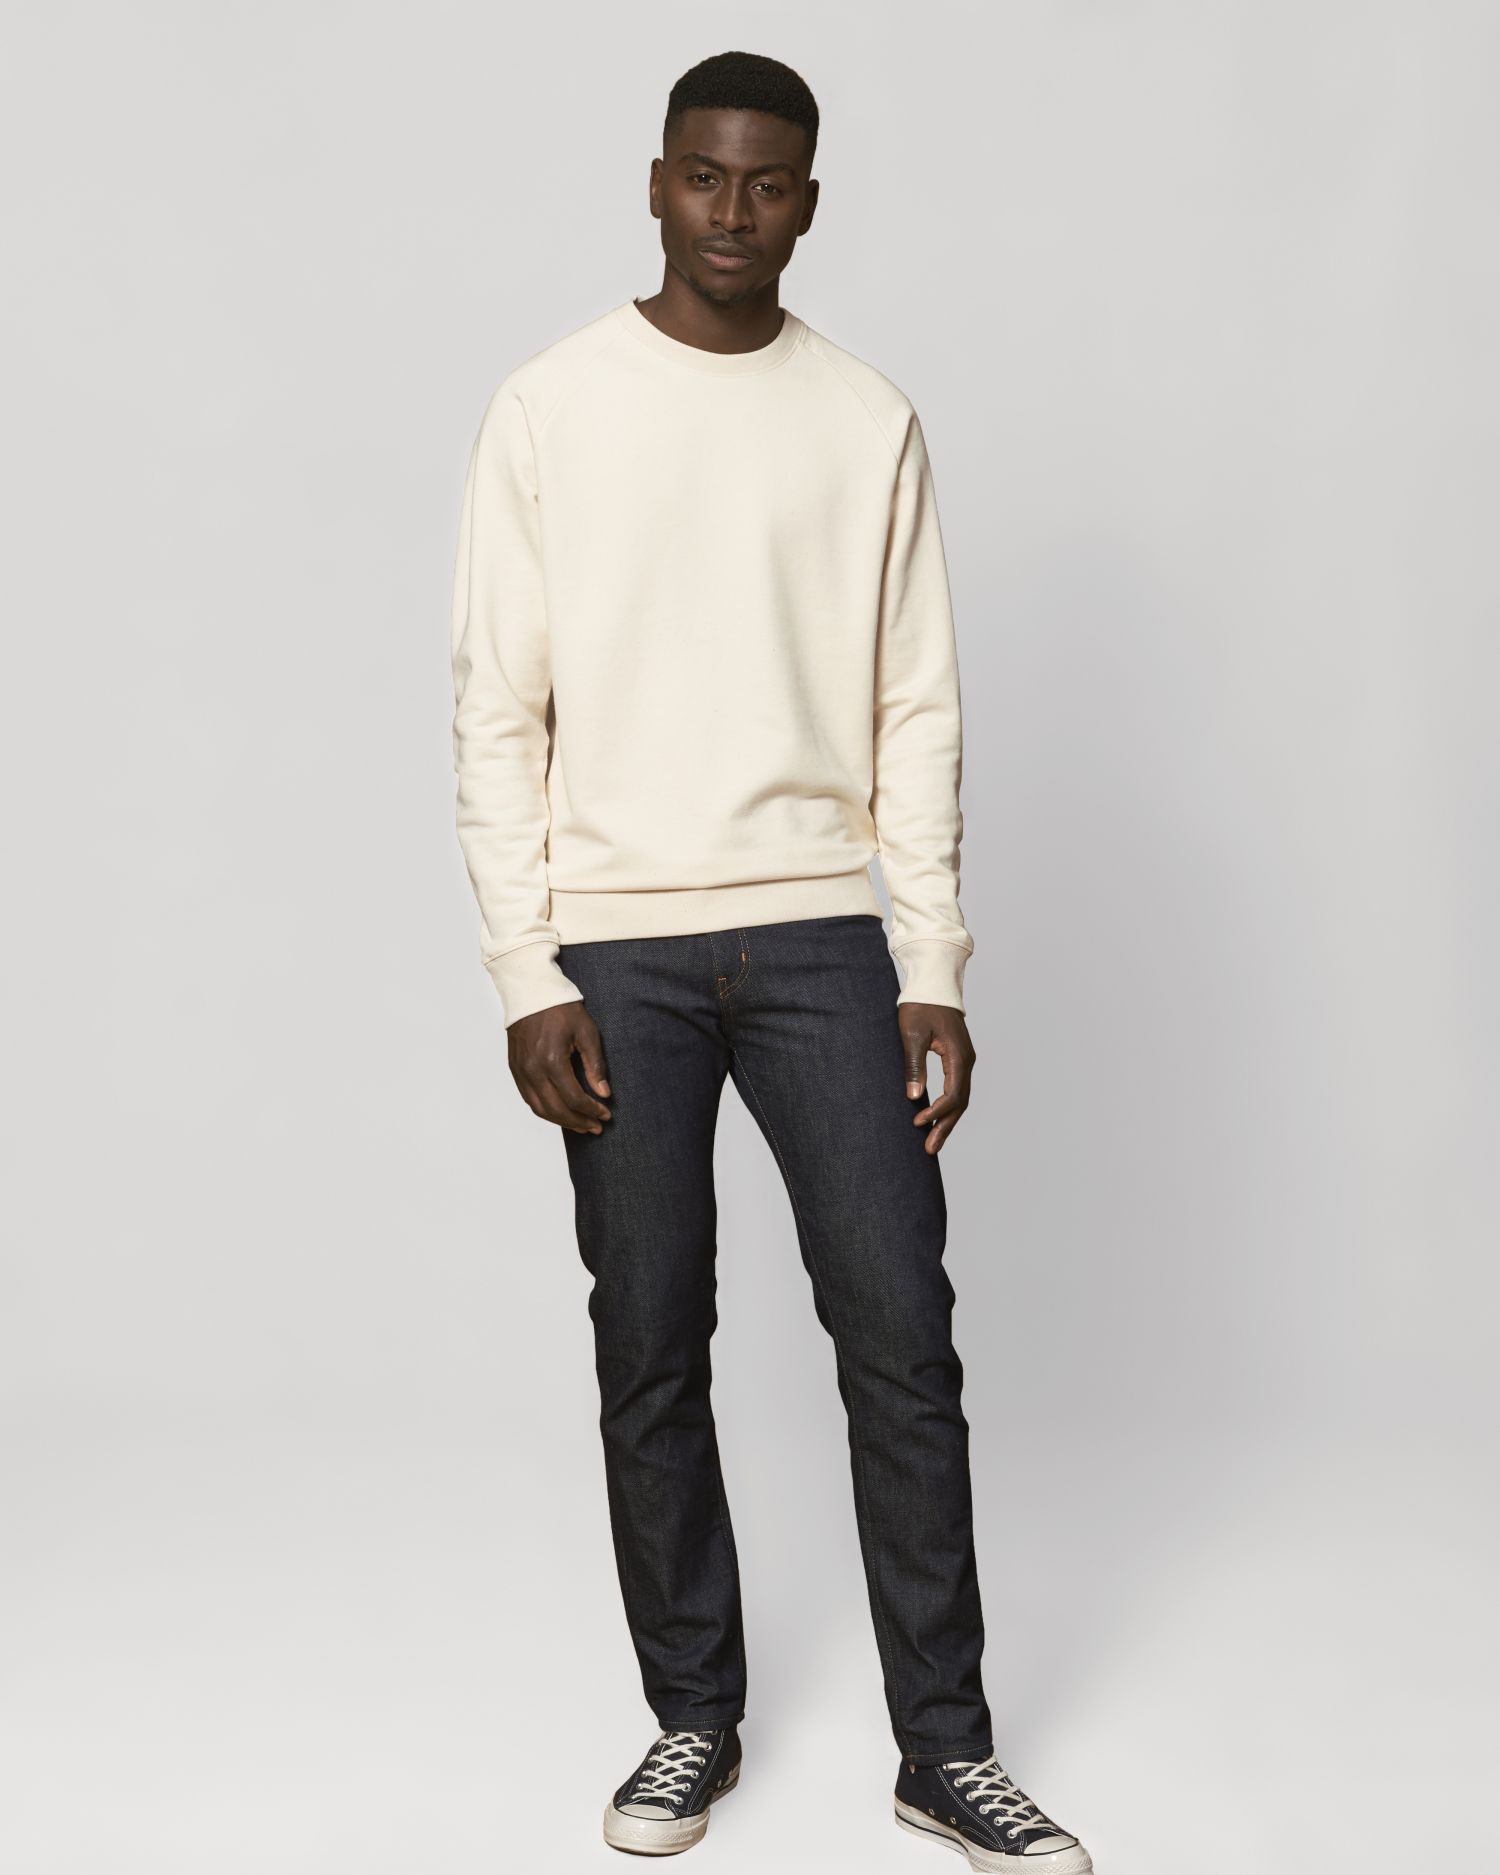 Stanley Stroller - Le sweat-shirt col rond iconique homme